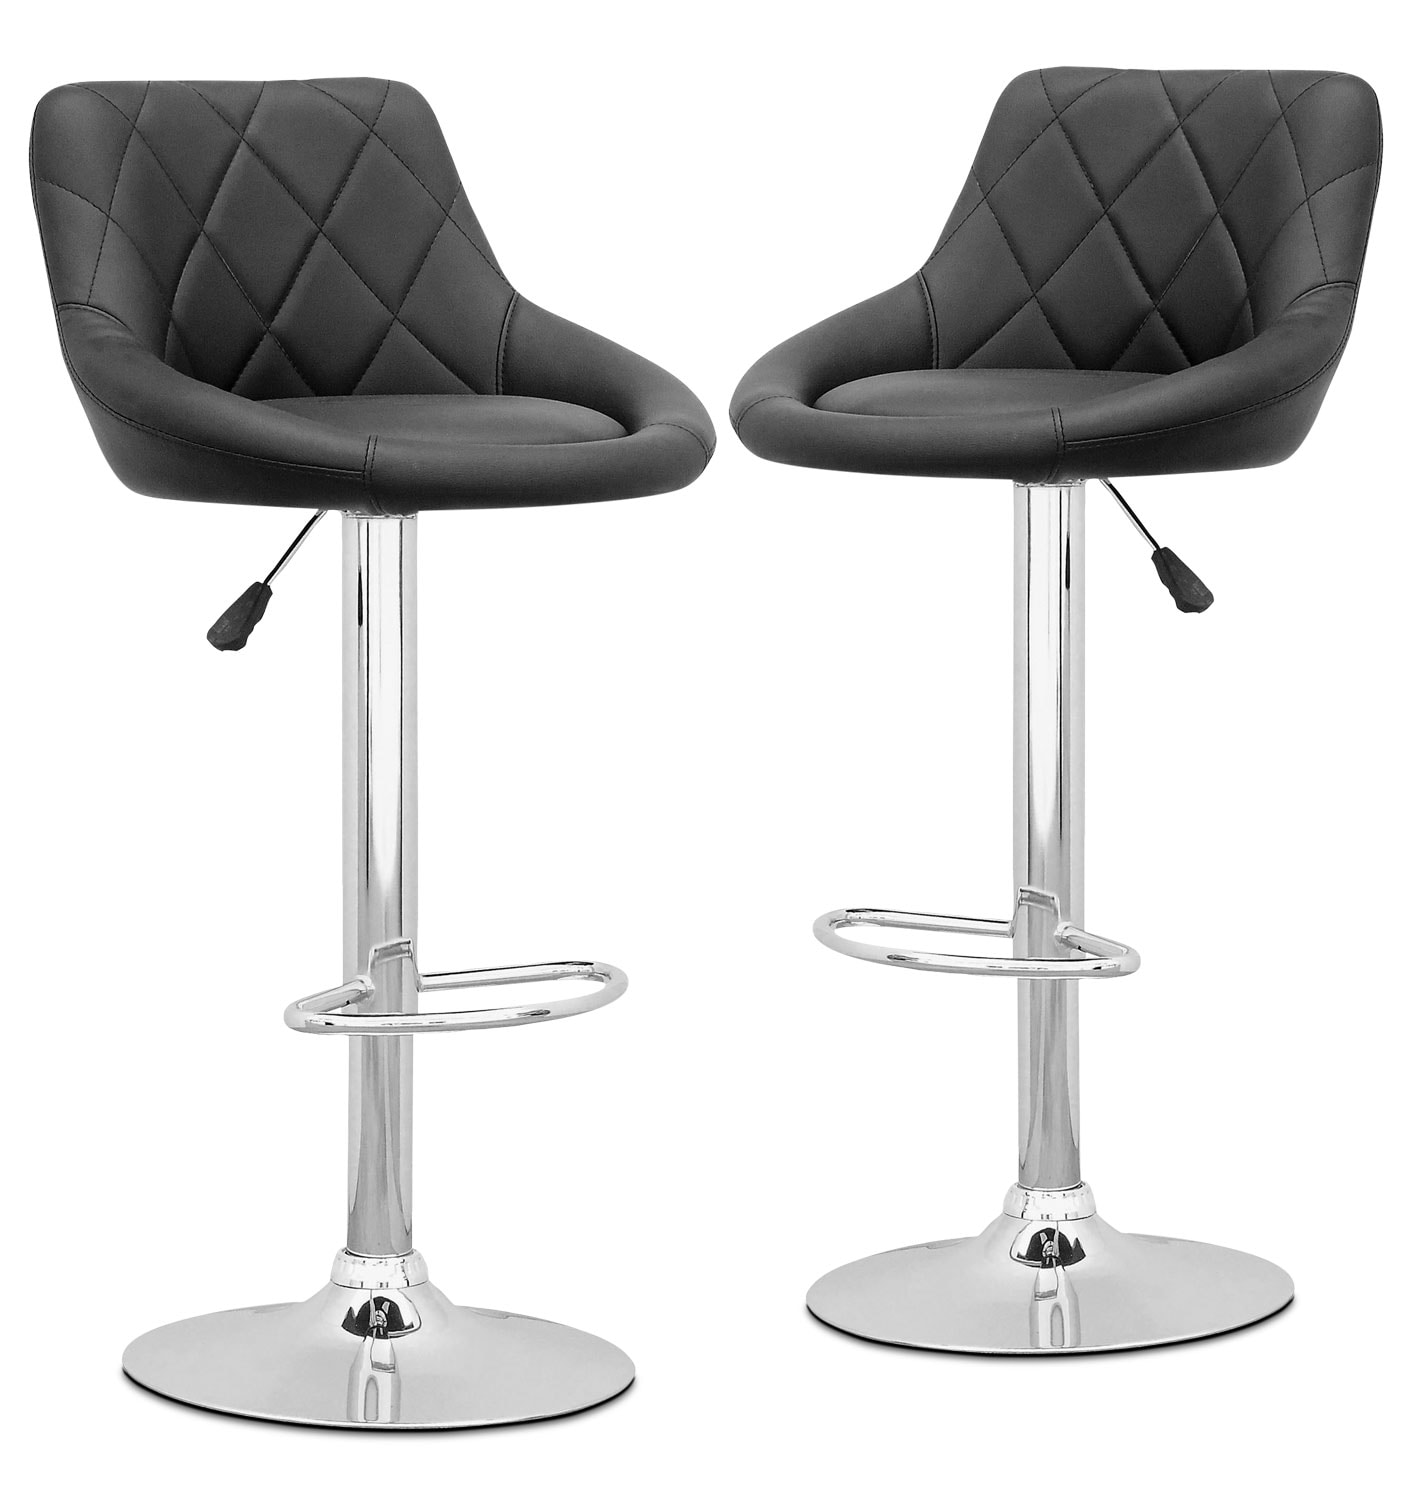 Adjustable Diamond-Back Bar Stool, Set of 2 – Black